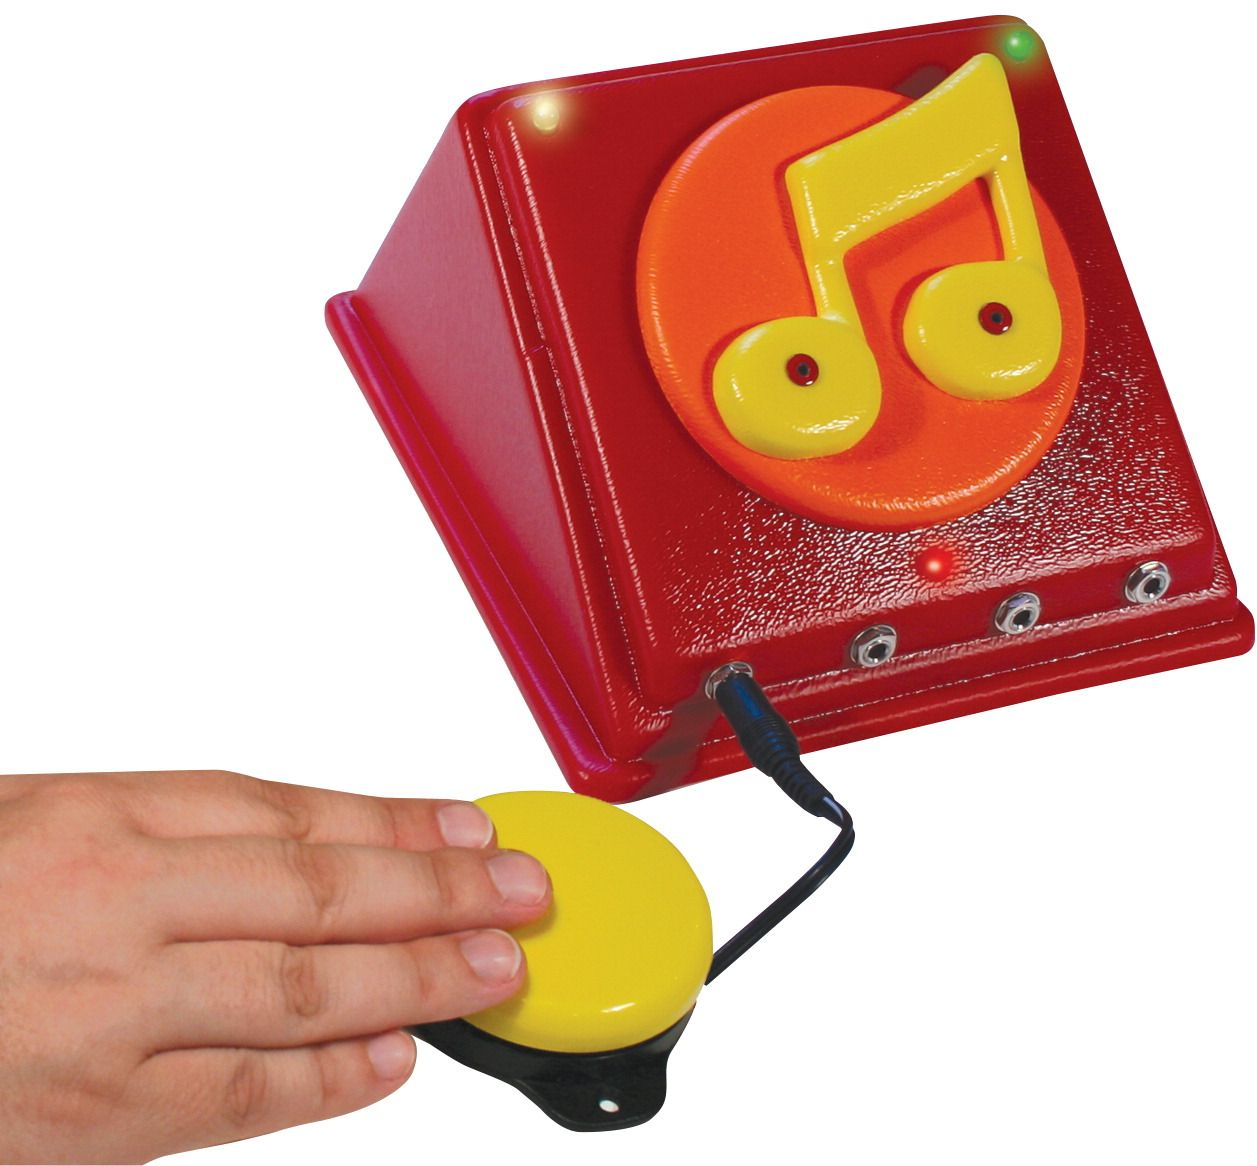 Enabling Devices Music Box Adapted Toy 5 In L X 5 In W X